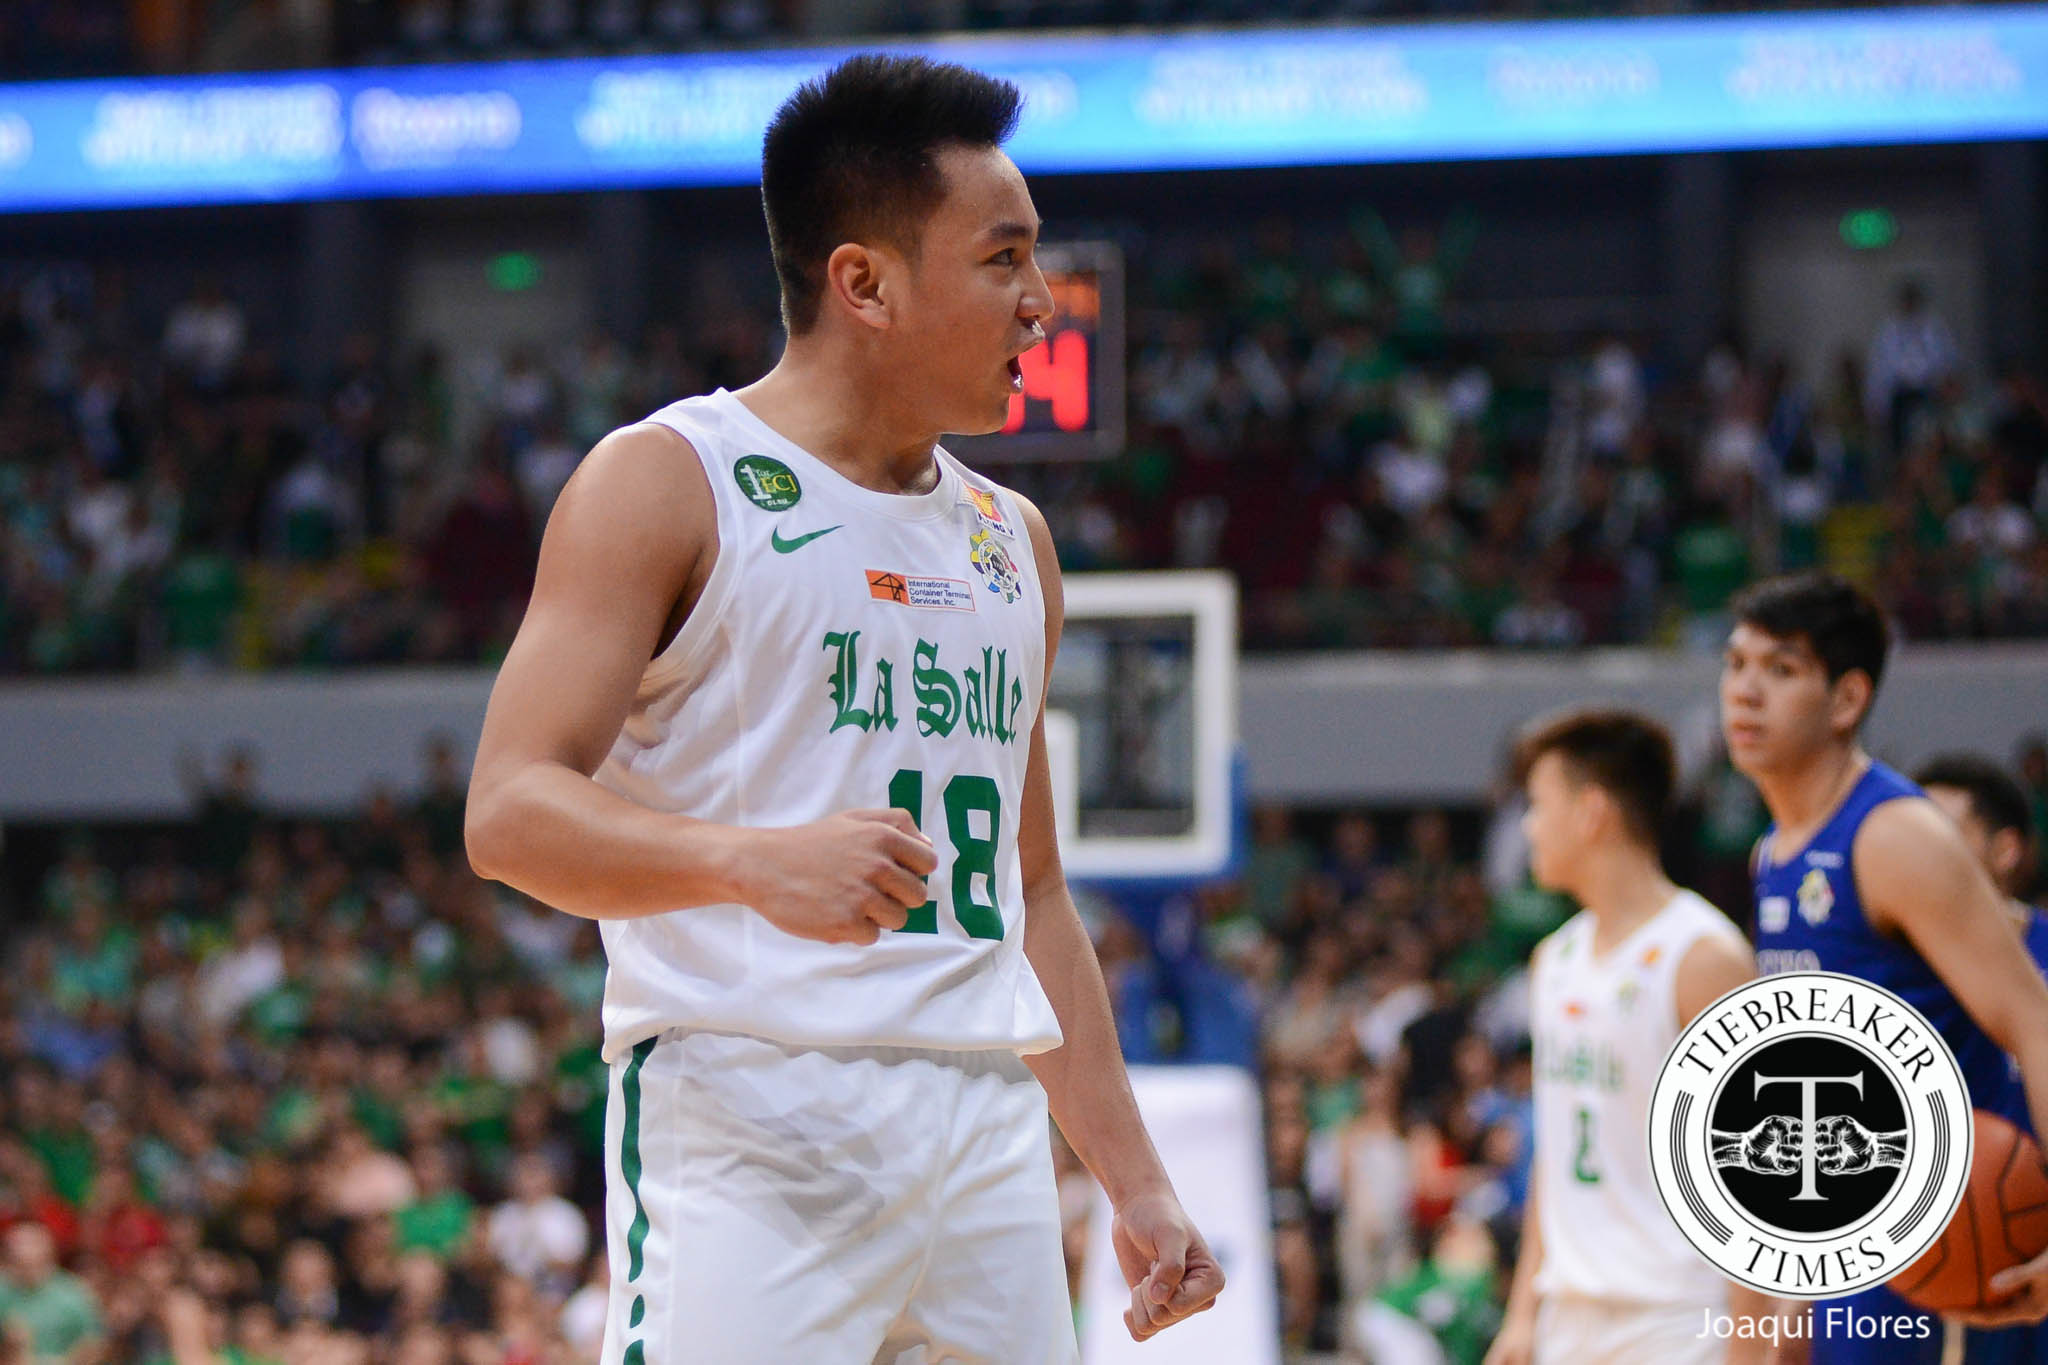 UAAP-79-DLSU-vs.-ADMU-Torres-0573 Ben Mbala looks back on epic alley-oop from Torres: 'It was a bad pass' Basketball DLSU News UAAP  - philippine sports news